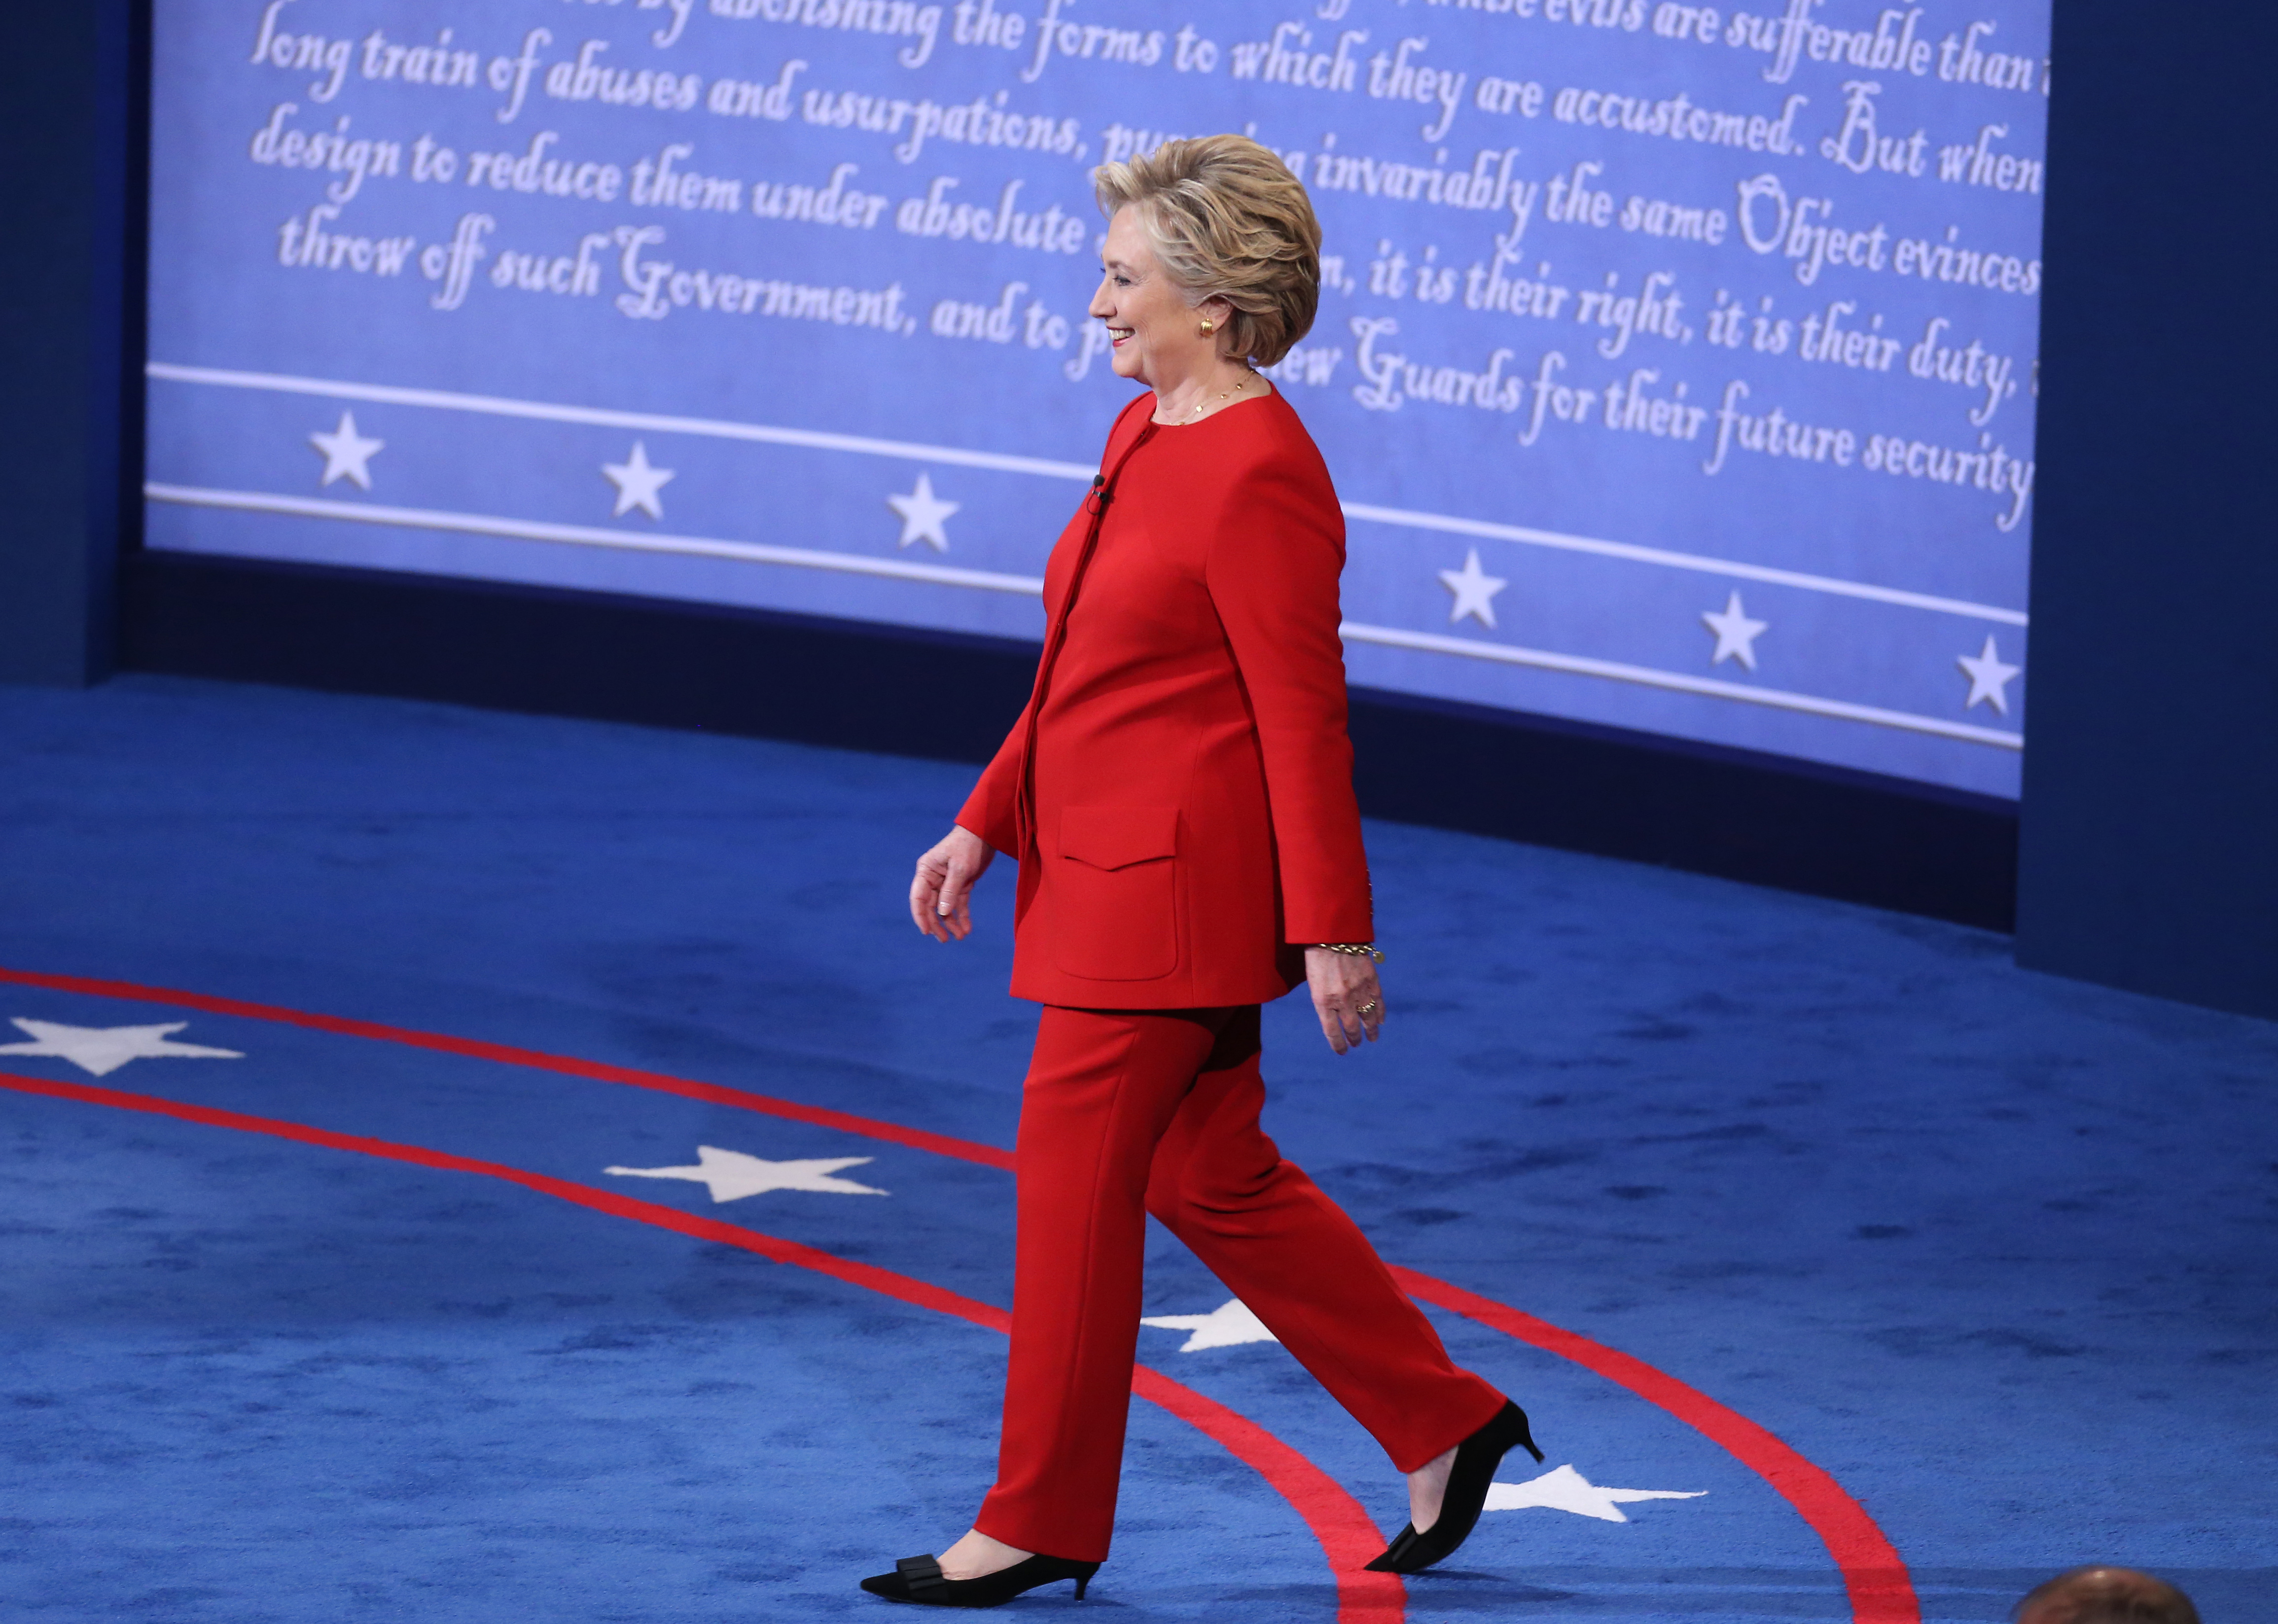 Hillary Clinton, 2016 Democratic presidential nominee, arrives on stage during the first U.S. presidential debate at Hofstra University in Hempstead, New York, U.S., on Monday, Sept. 26, 2016.